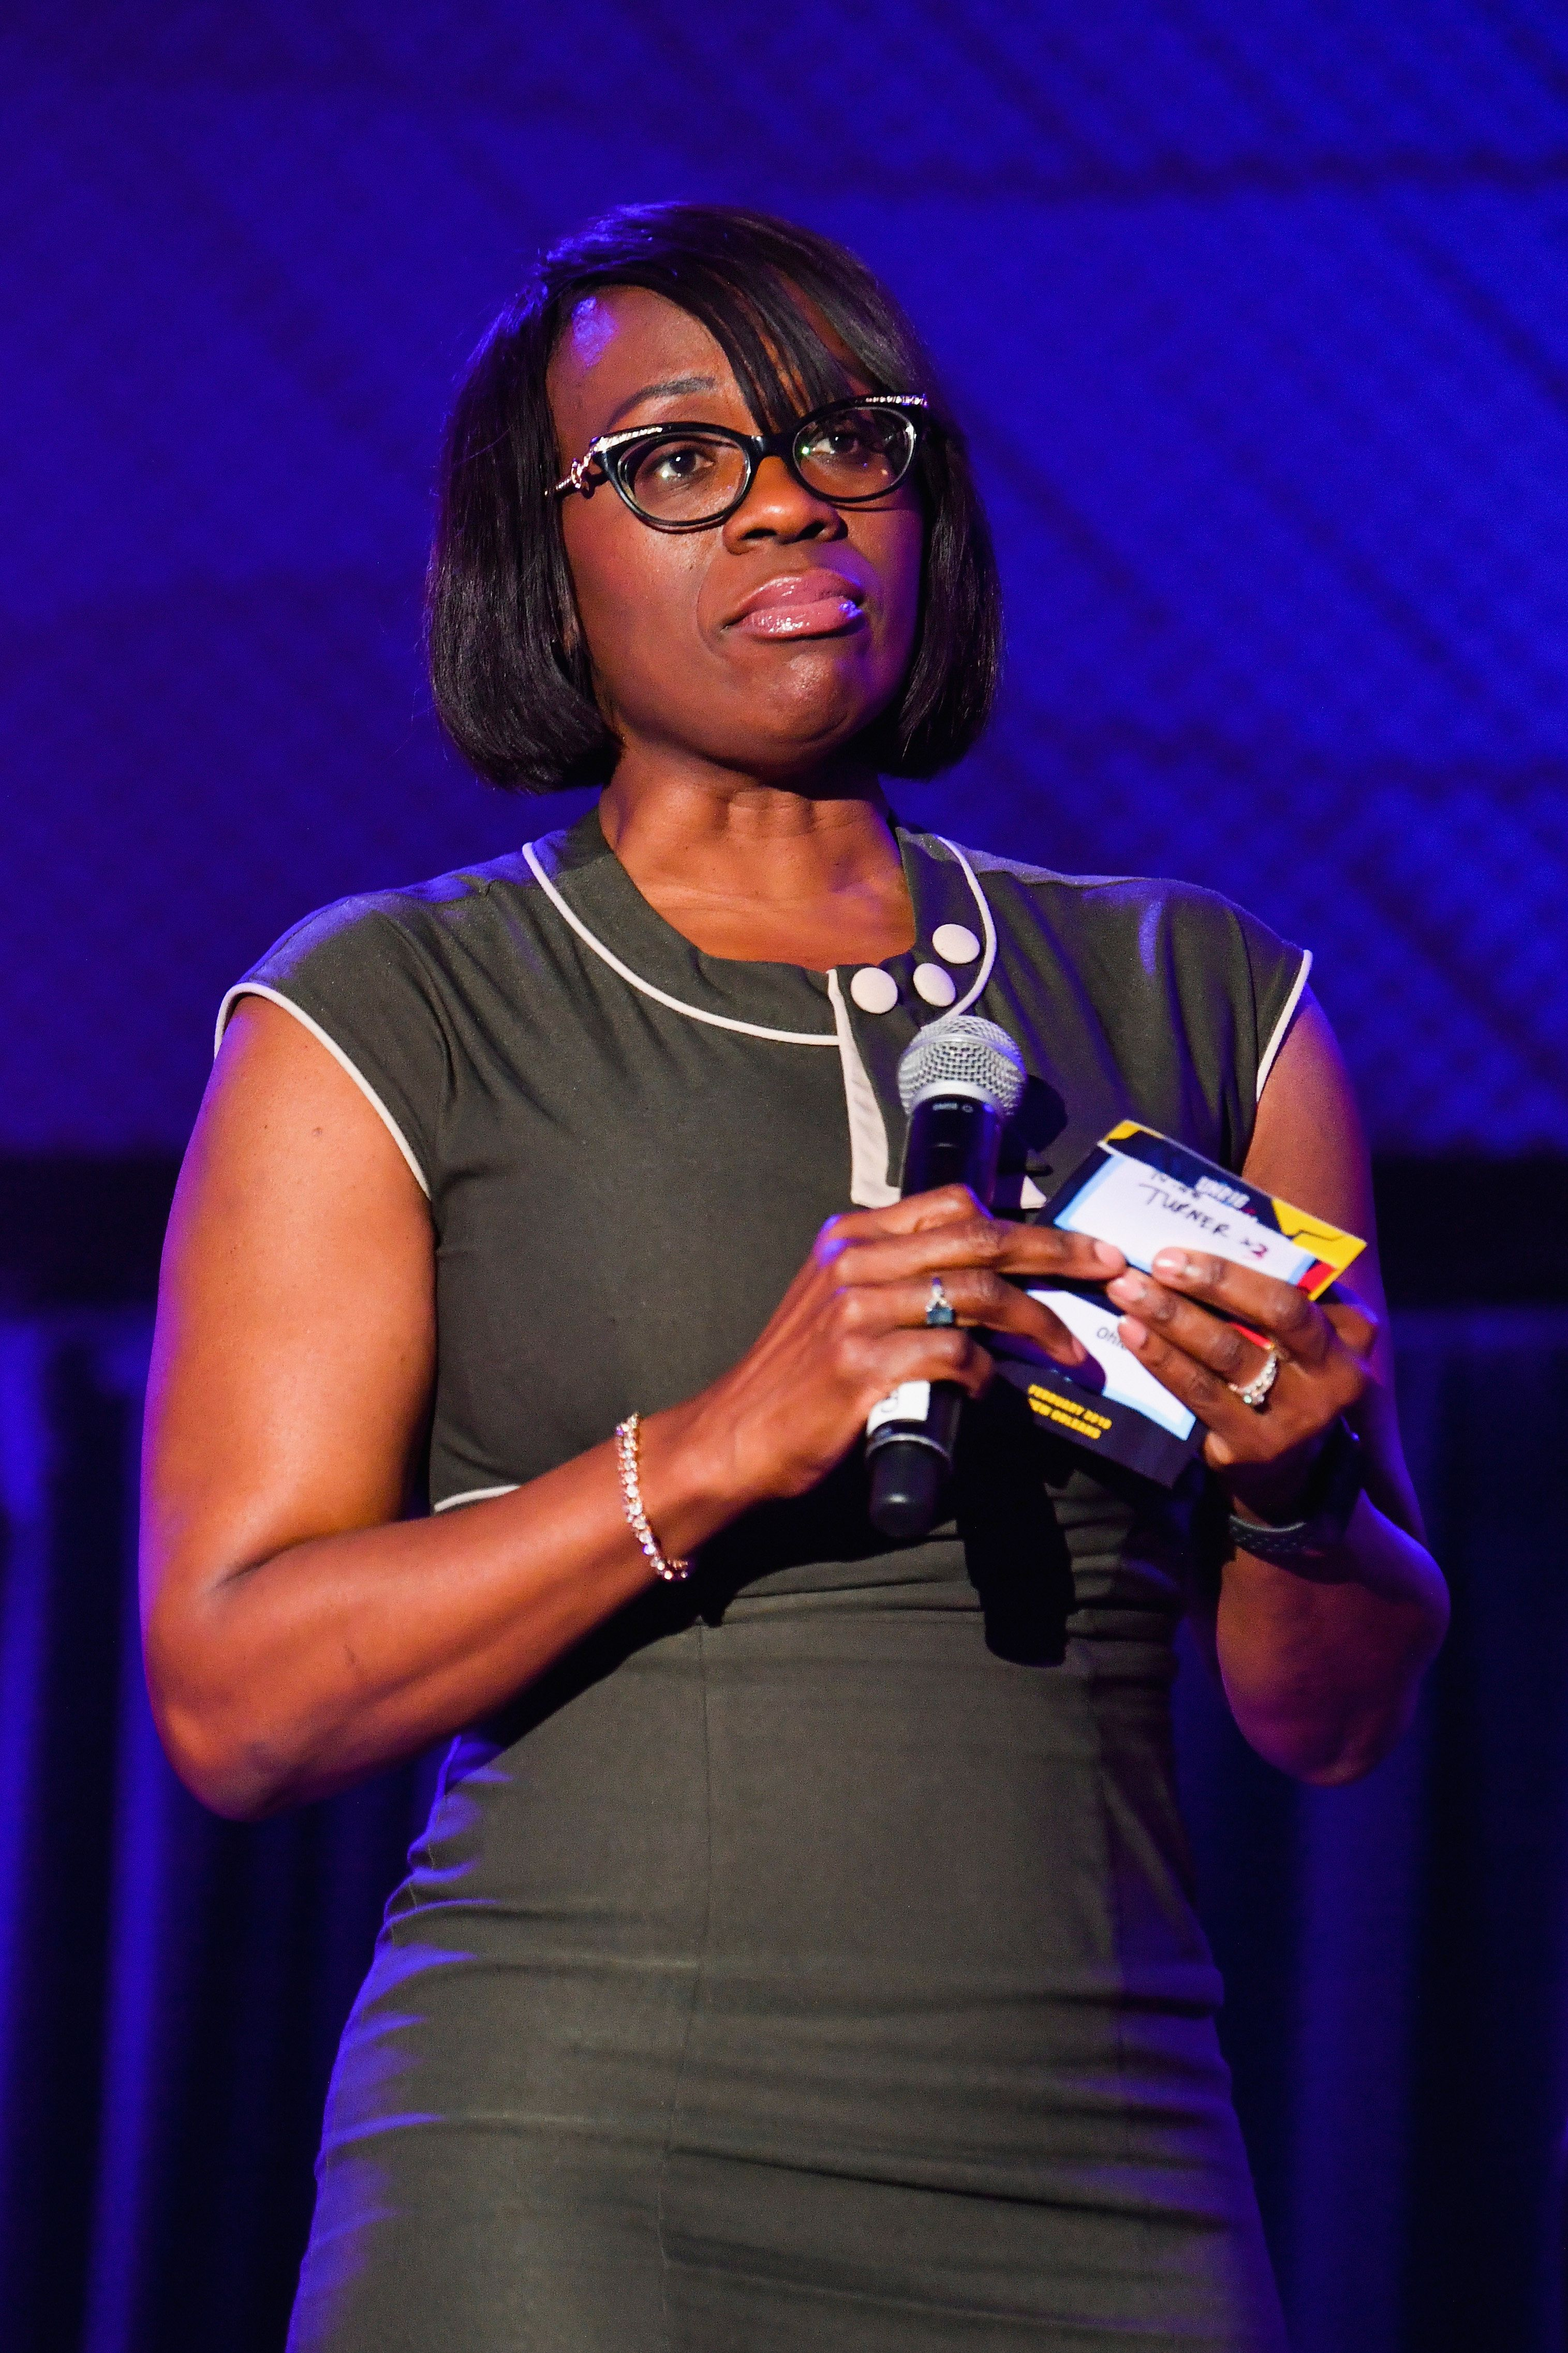 NEW ORLEANS, LA - FEBRUARY 03:  Former Ohio State Senator (D) and  President of Our Revolution Nina Turner speaks during Unrigged Live! presented by Represent.Us during the 2018 Unrig the System Summit at the McAlister Auditorium at Tulane University on February 3, 2018 in New Orleans, Louisiana.  (Photo by Erika Goldring/Getty Images)